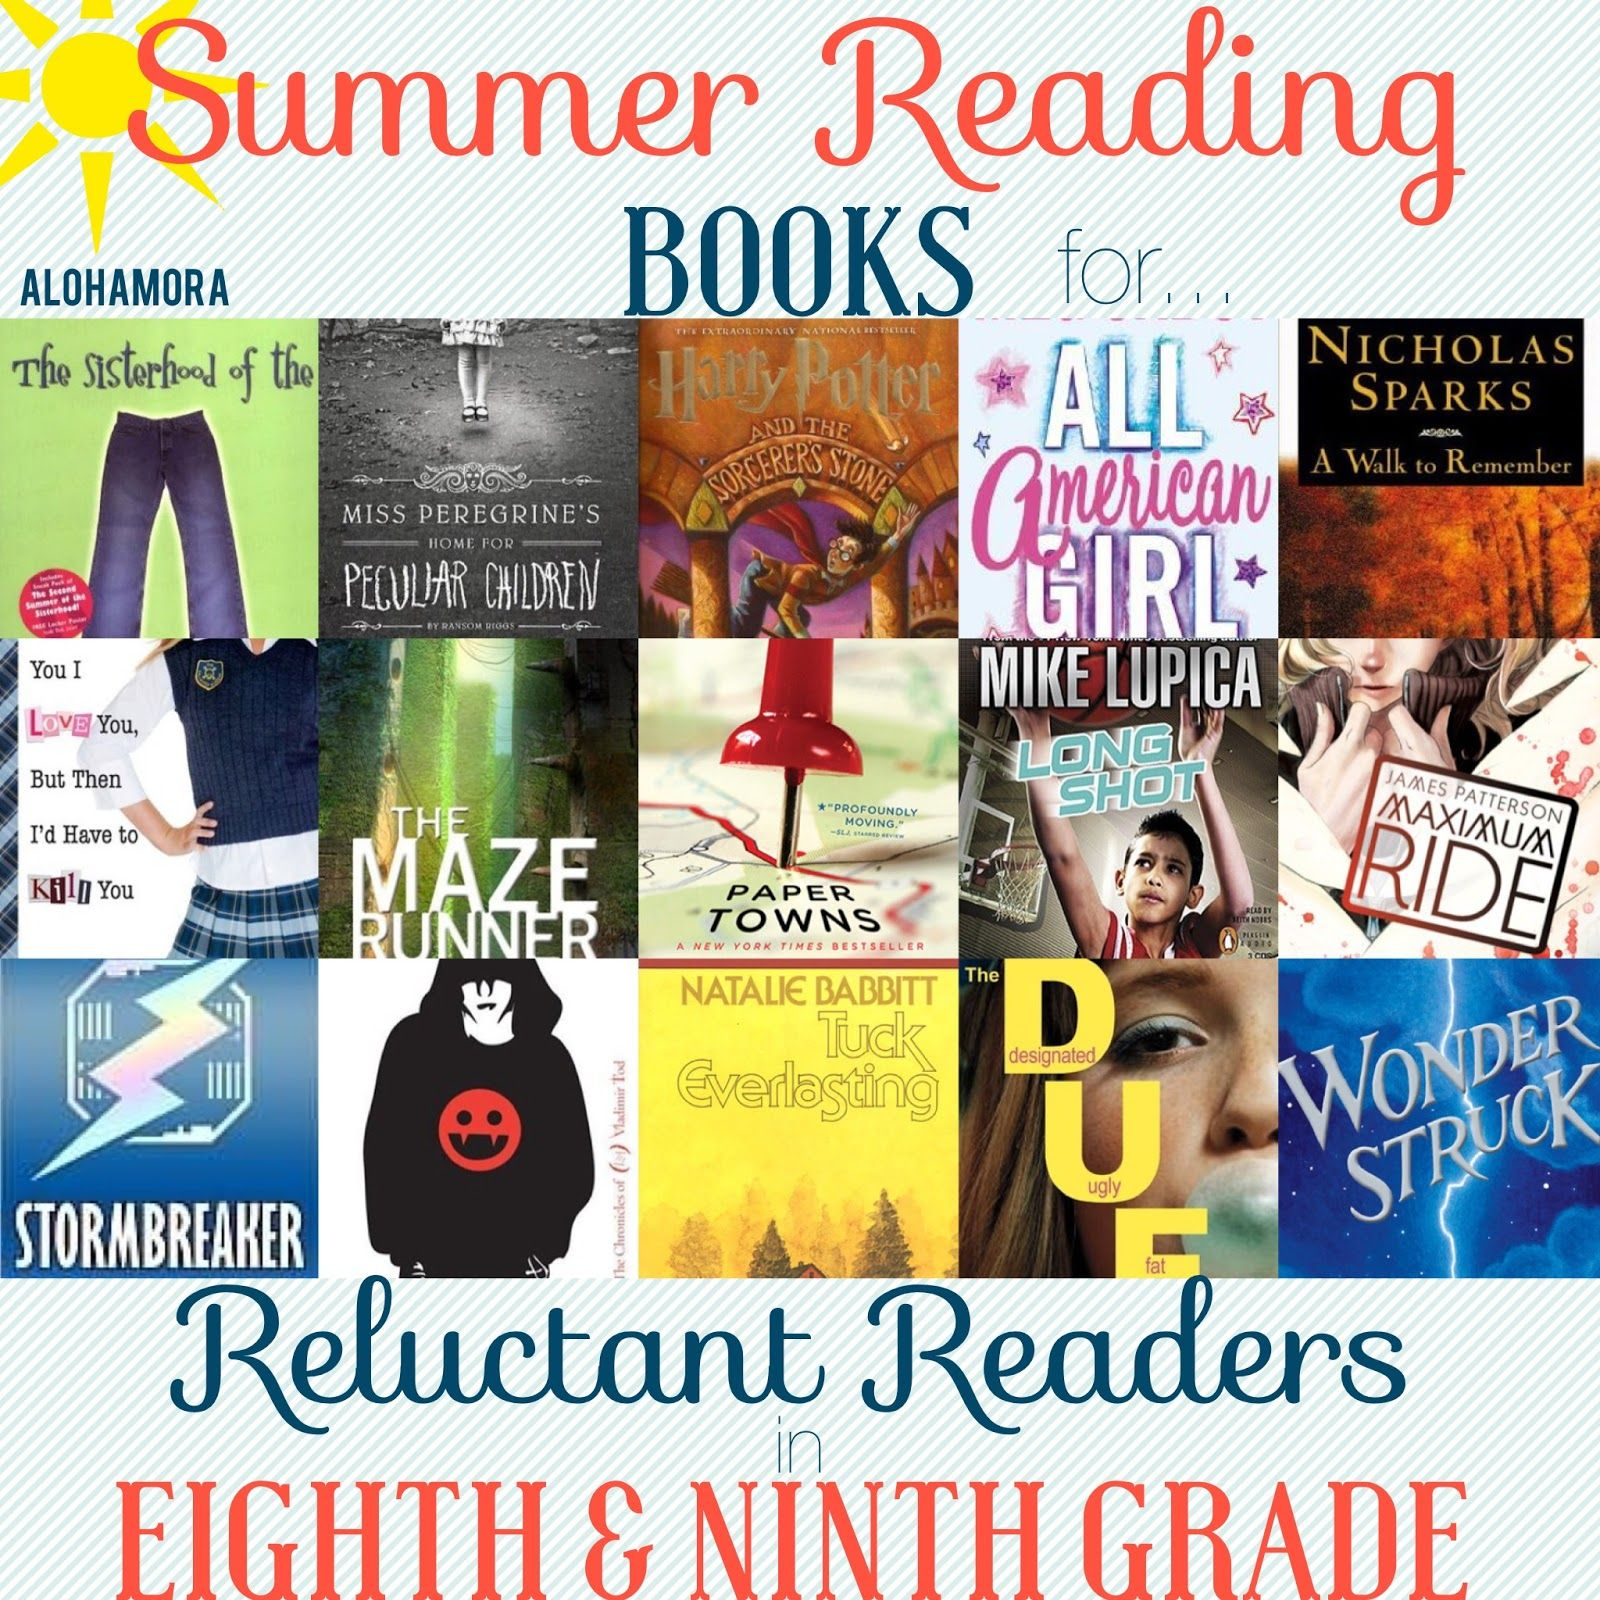 Summer Reading Book Lists For Reluctant Readers In 8th And